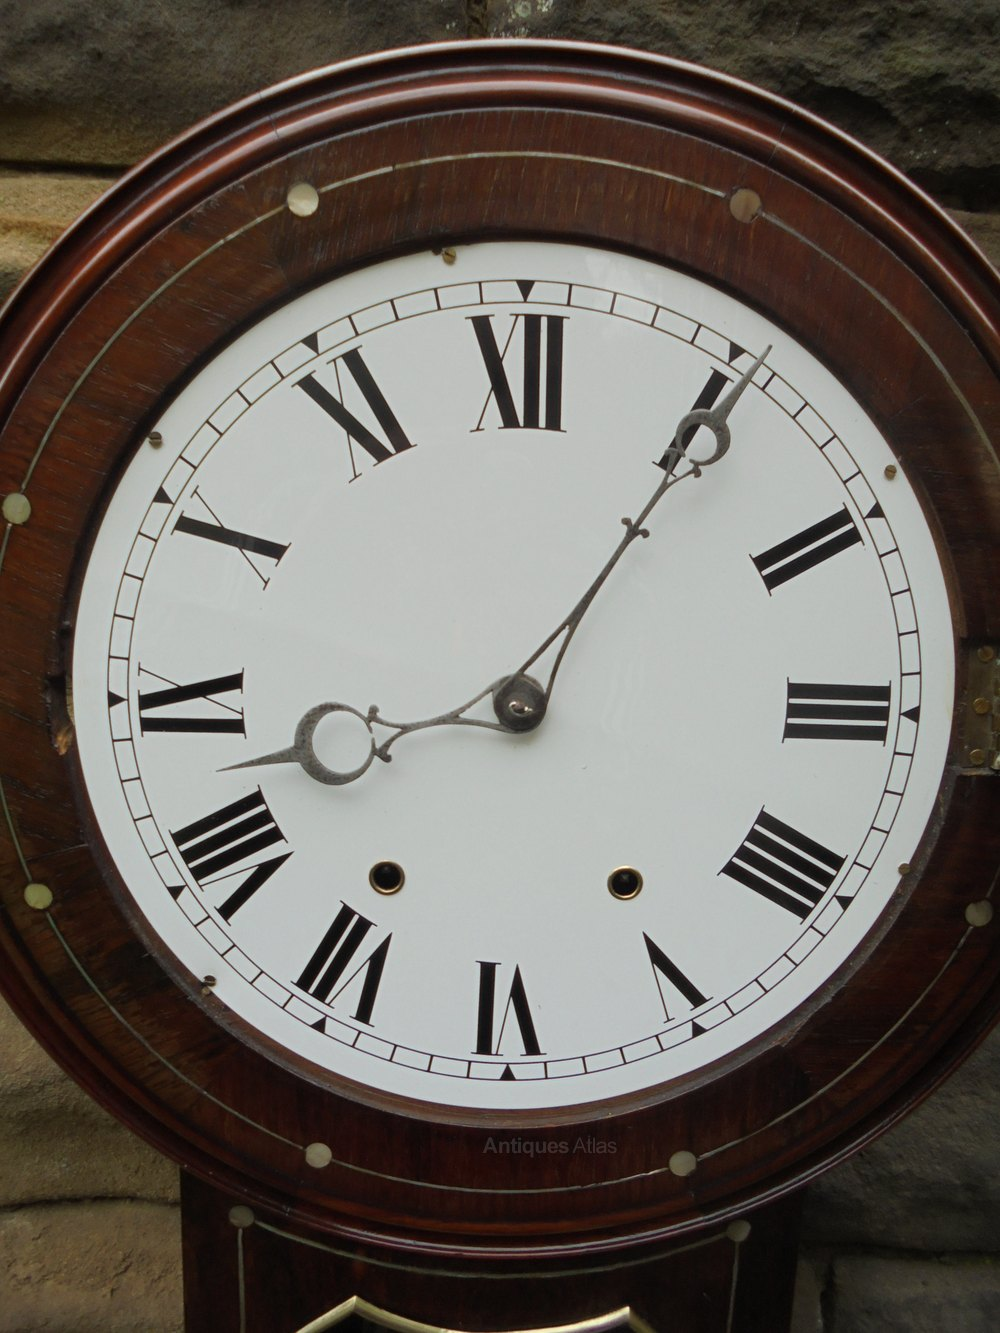 Antiques Atlas Antique Inlaid Rosewood Drop Dial Wall Clock